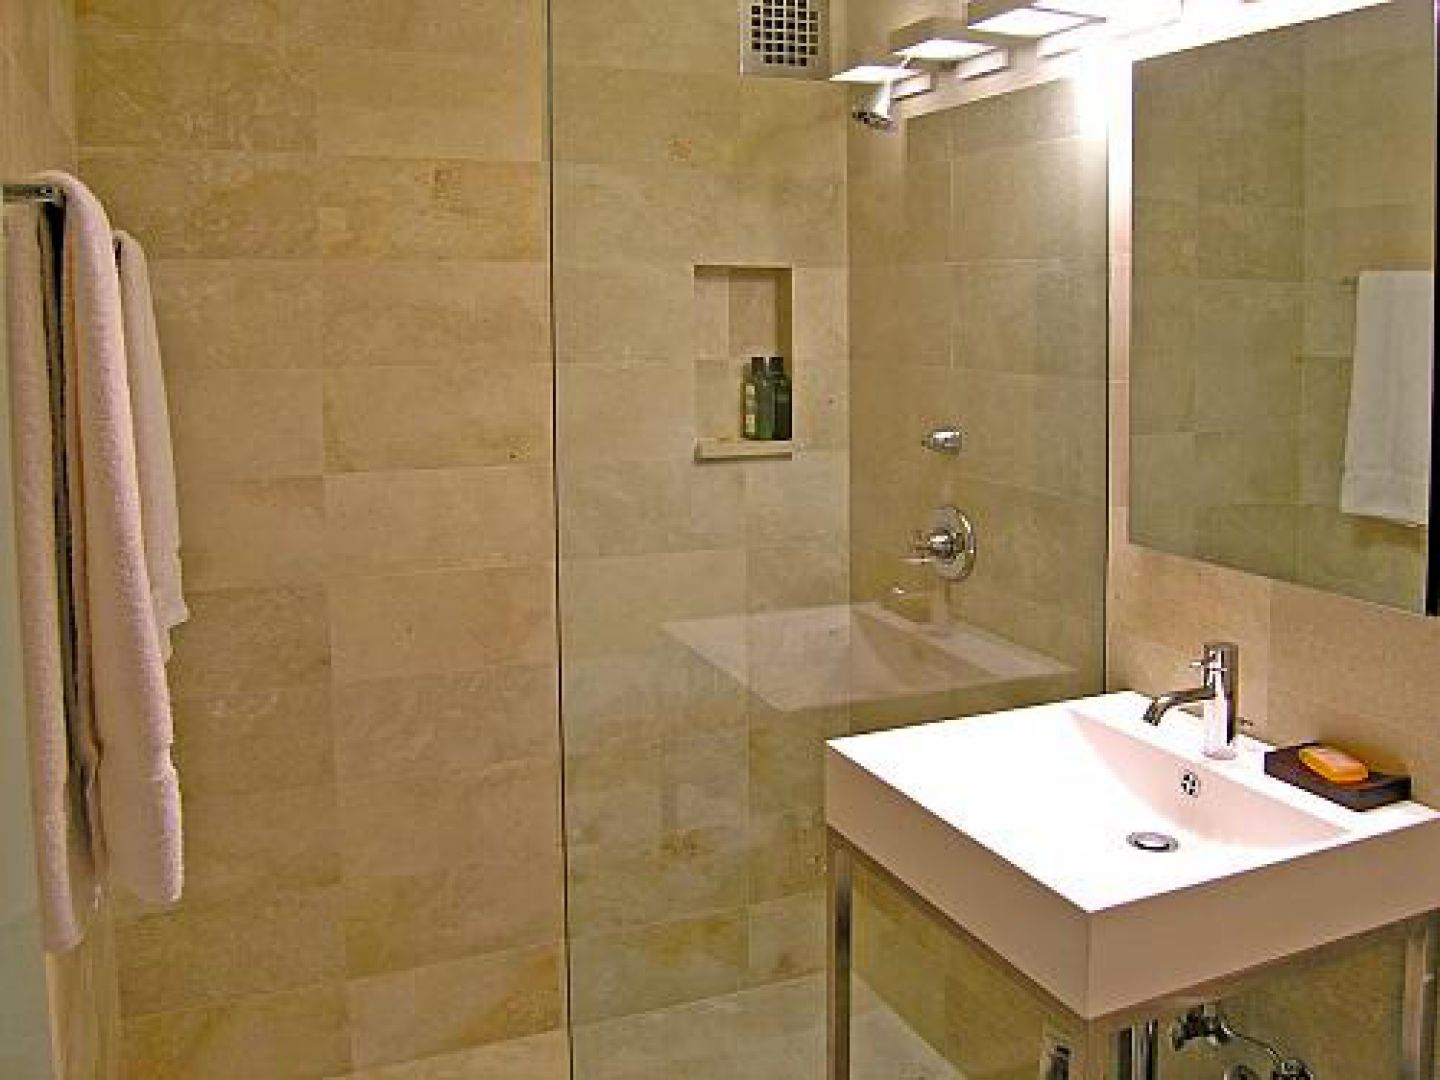 Tiled Bathroom Examples shower tile designs travertine | bathroom decoration with